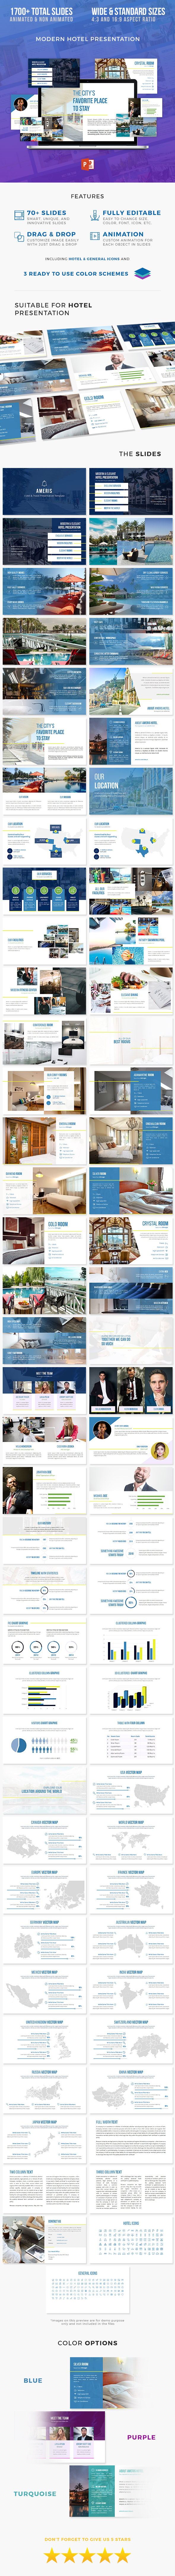 Hotel Presentation Template - PowerPoint Templates Presentation Templates